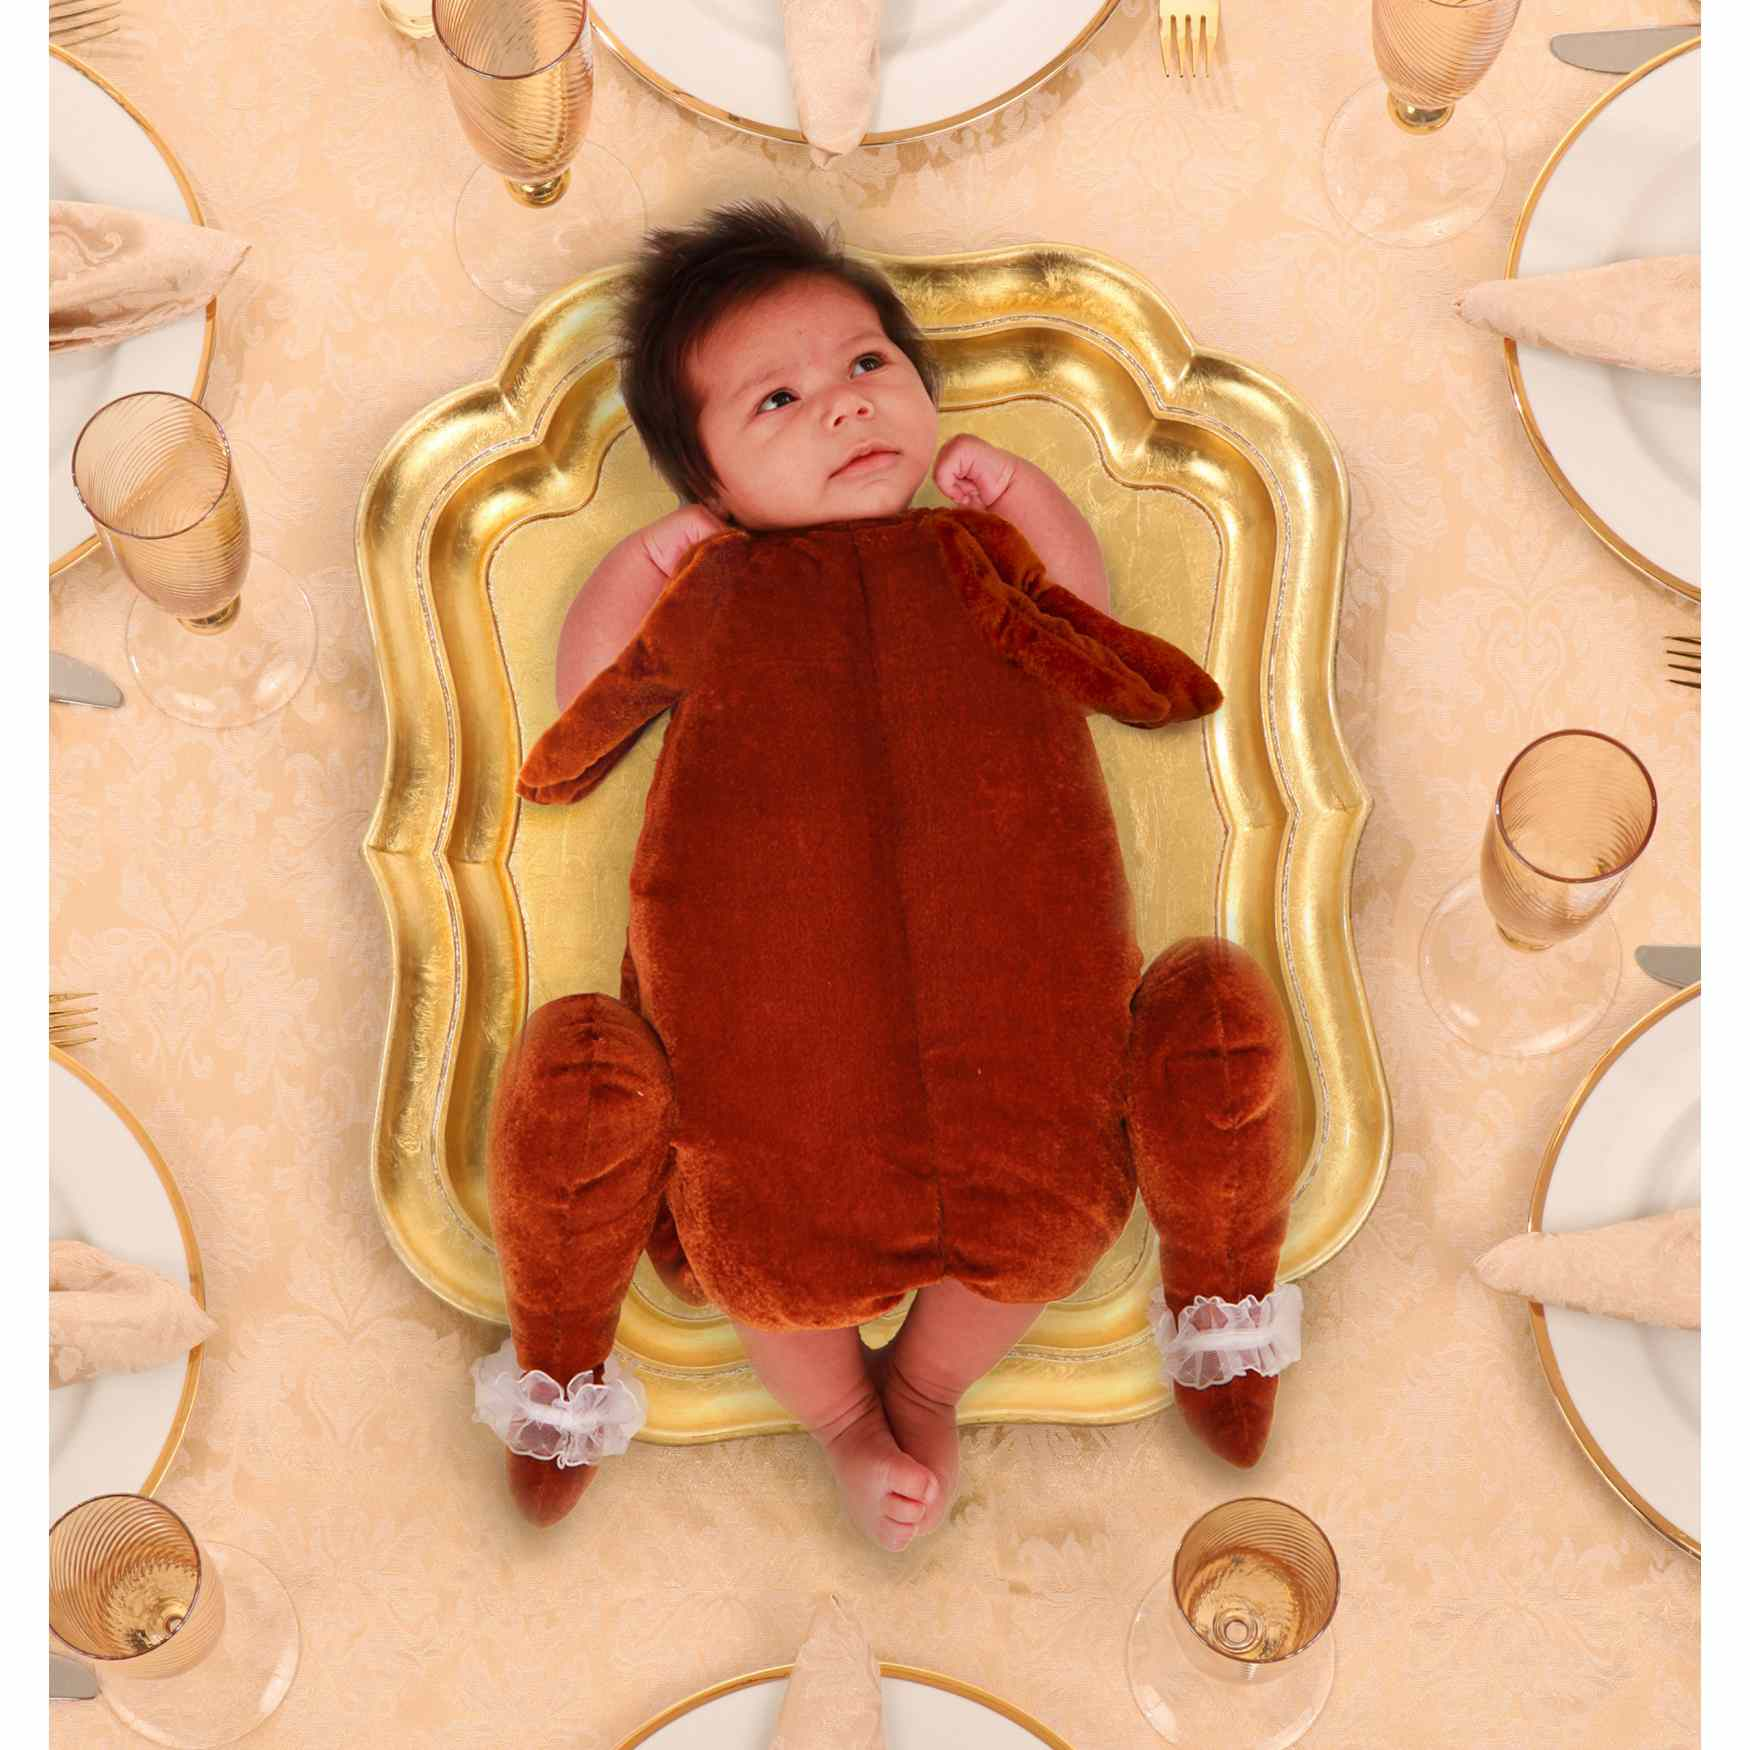 Baby Halloween Costumes Boy And Girl.20 Totally Bizarre Baby Halloween Costumes